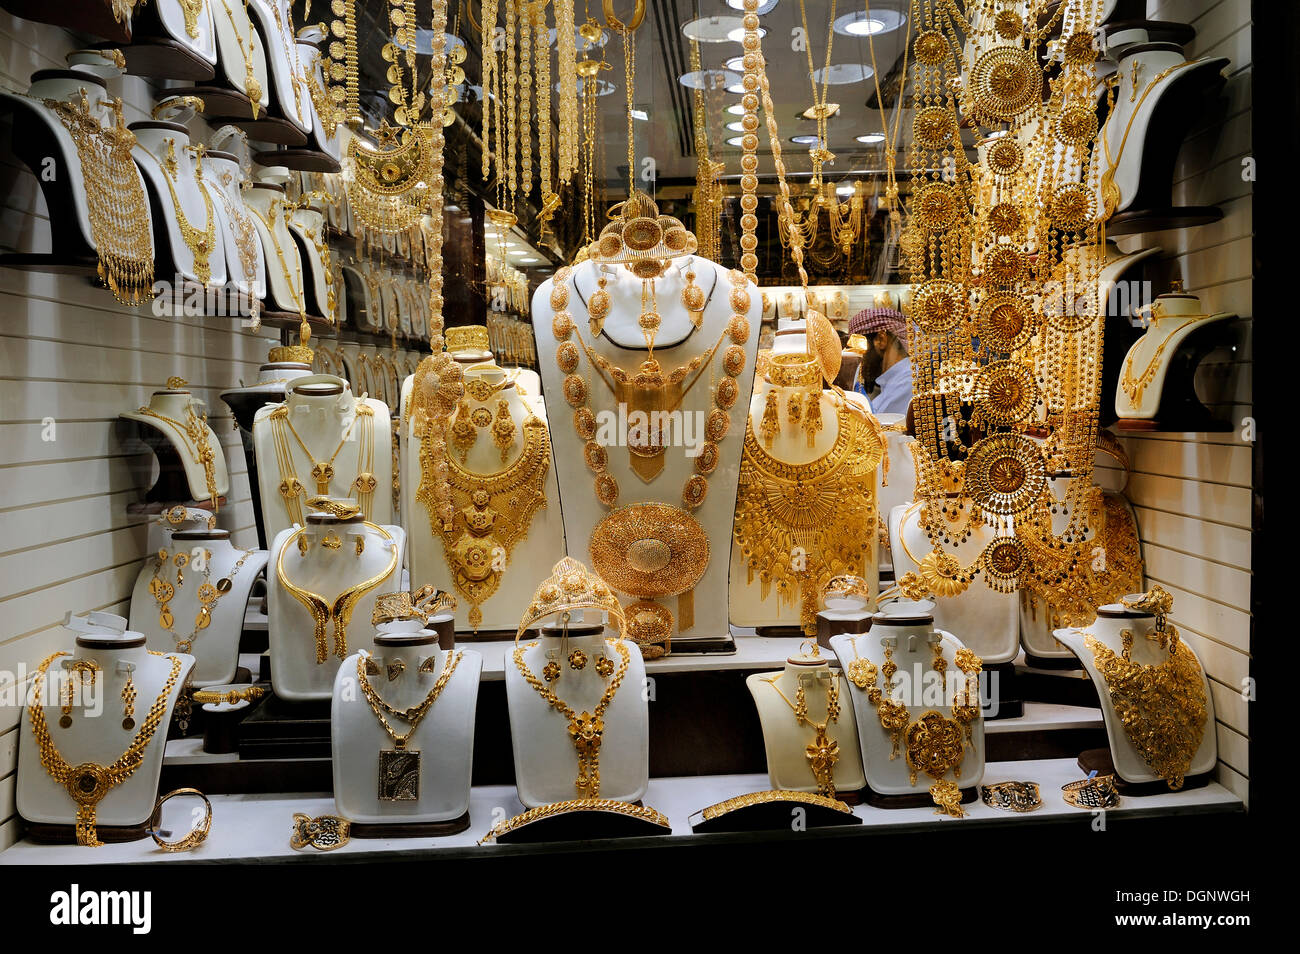 Elaborate jewellery, mainly gold, in a window display in the Deira Gold Souk, Dubai, Emirates, Arabian Peninsula, Middle East - Stock Image